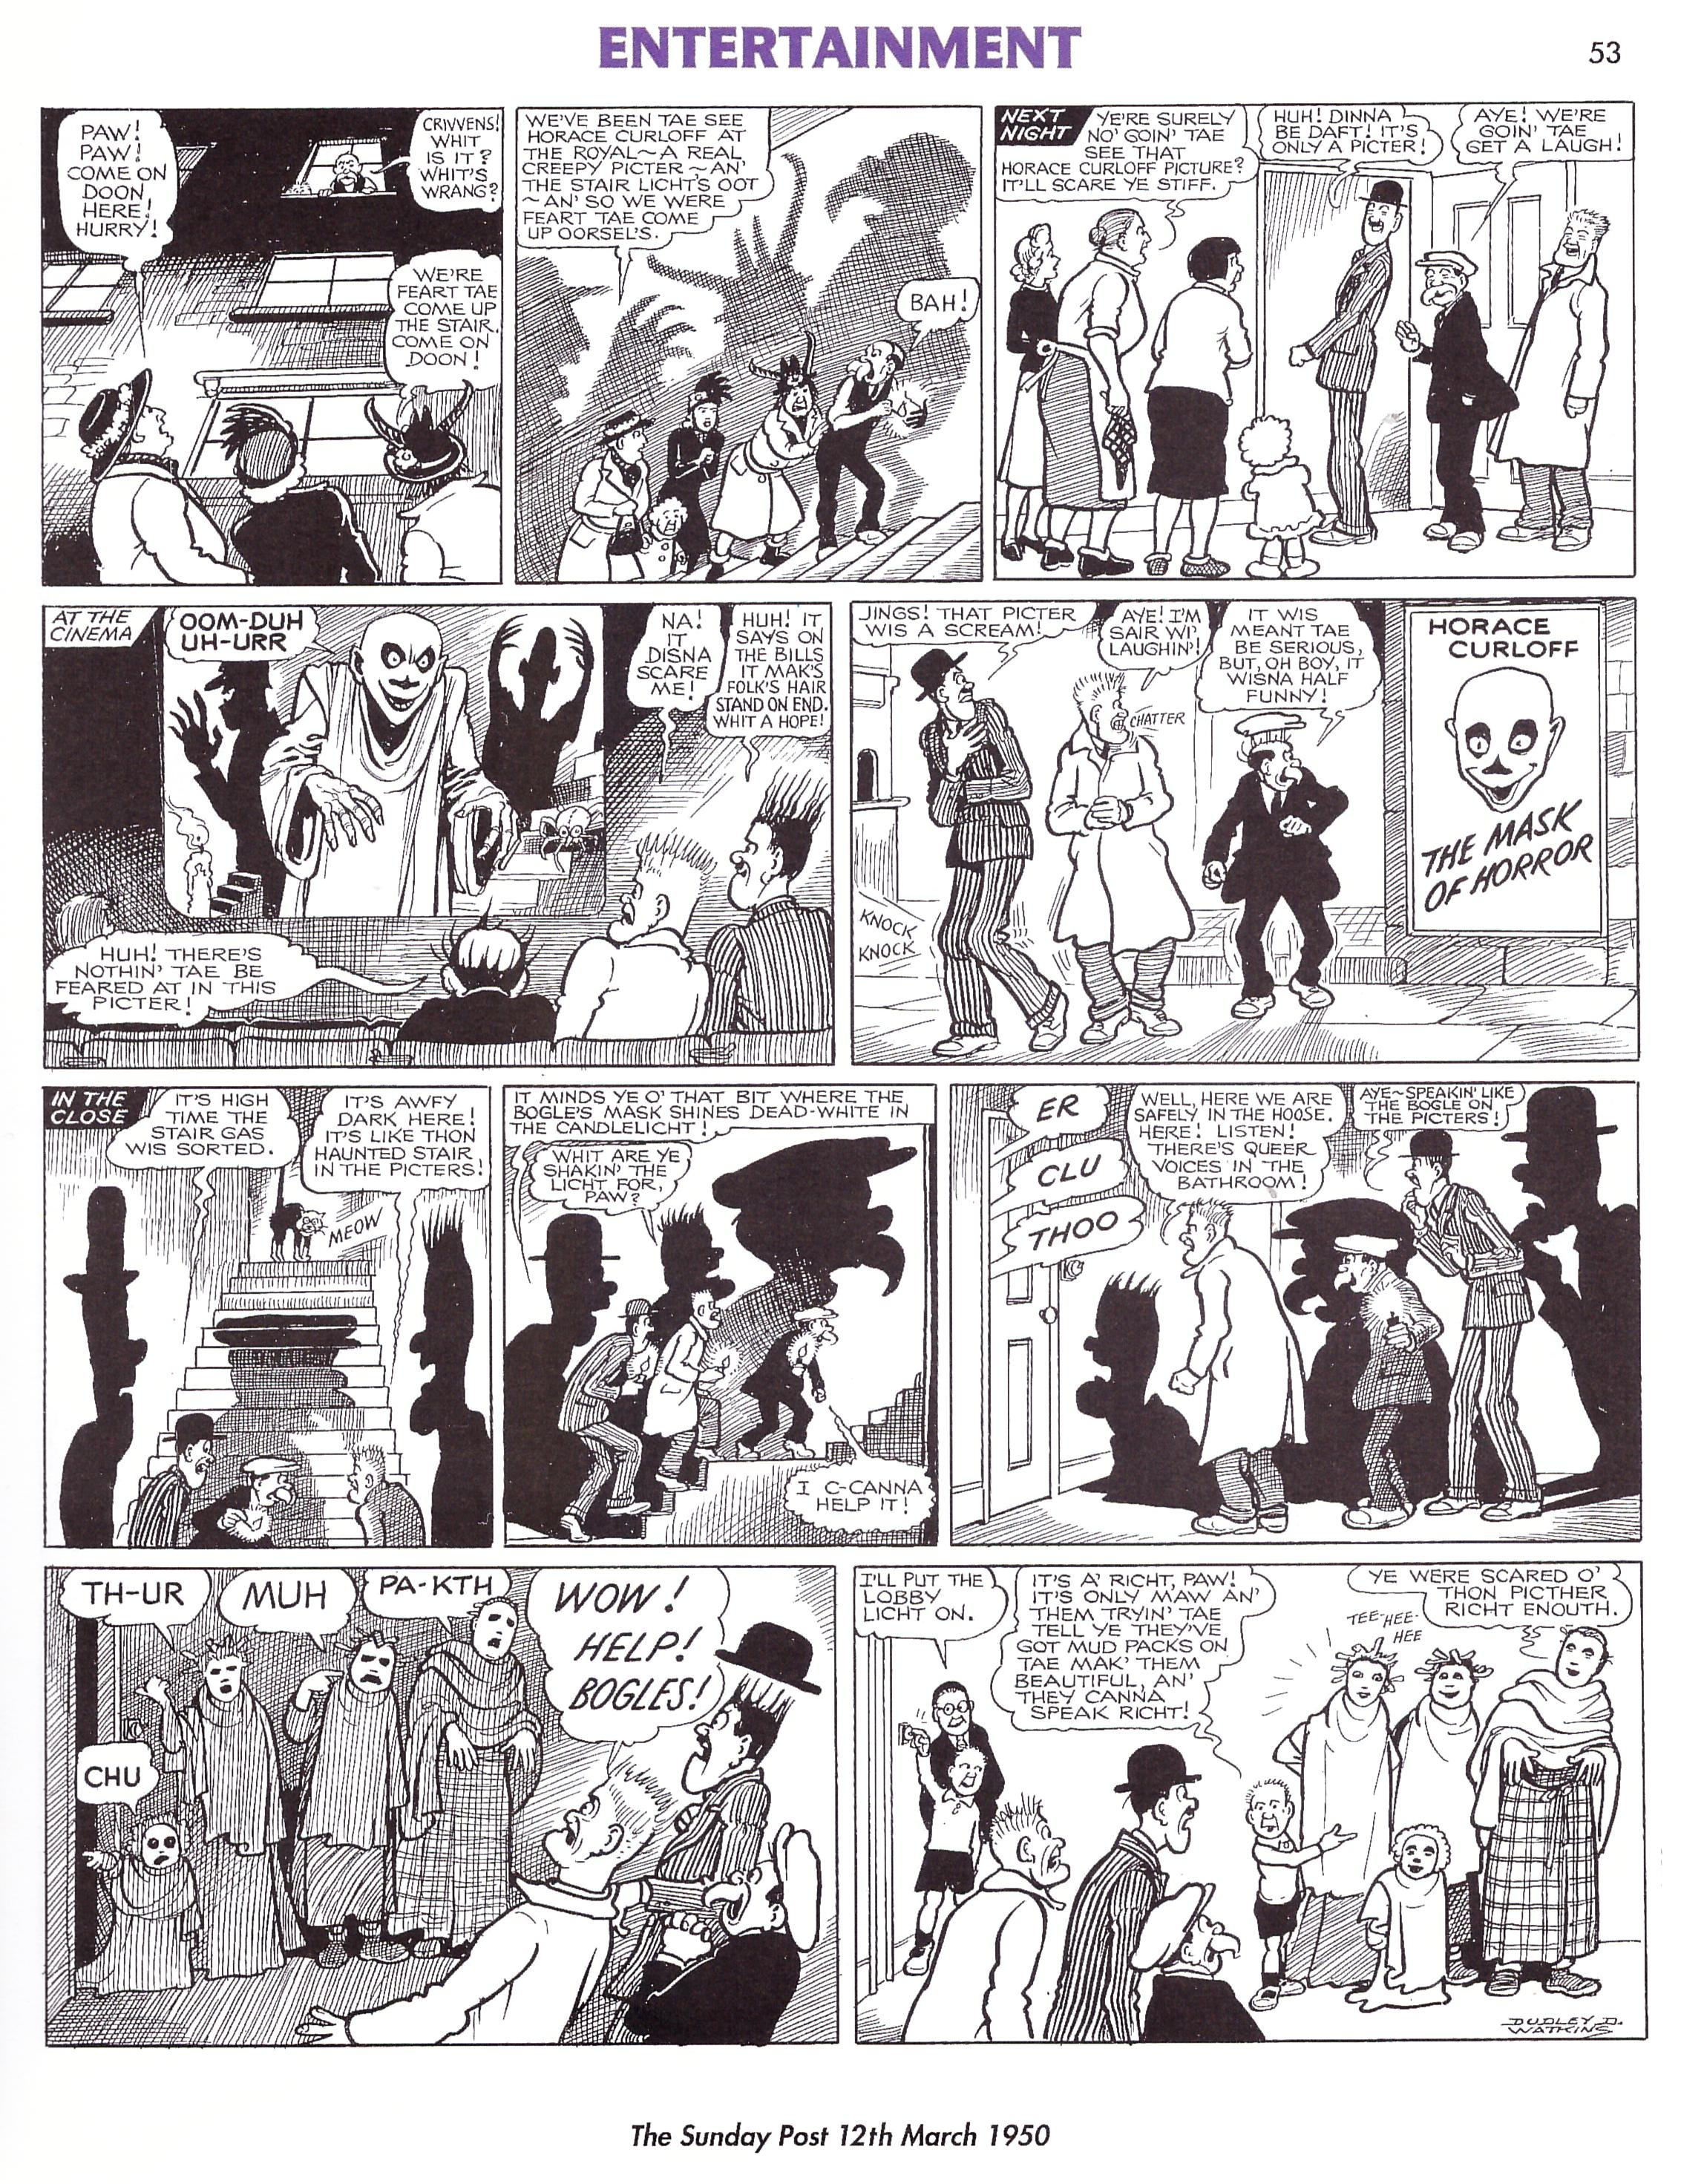 The Broons & Oor Wullie A Nation's Favourites review